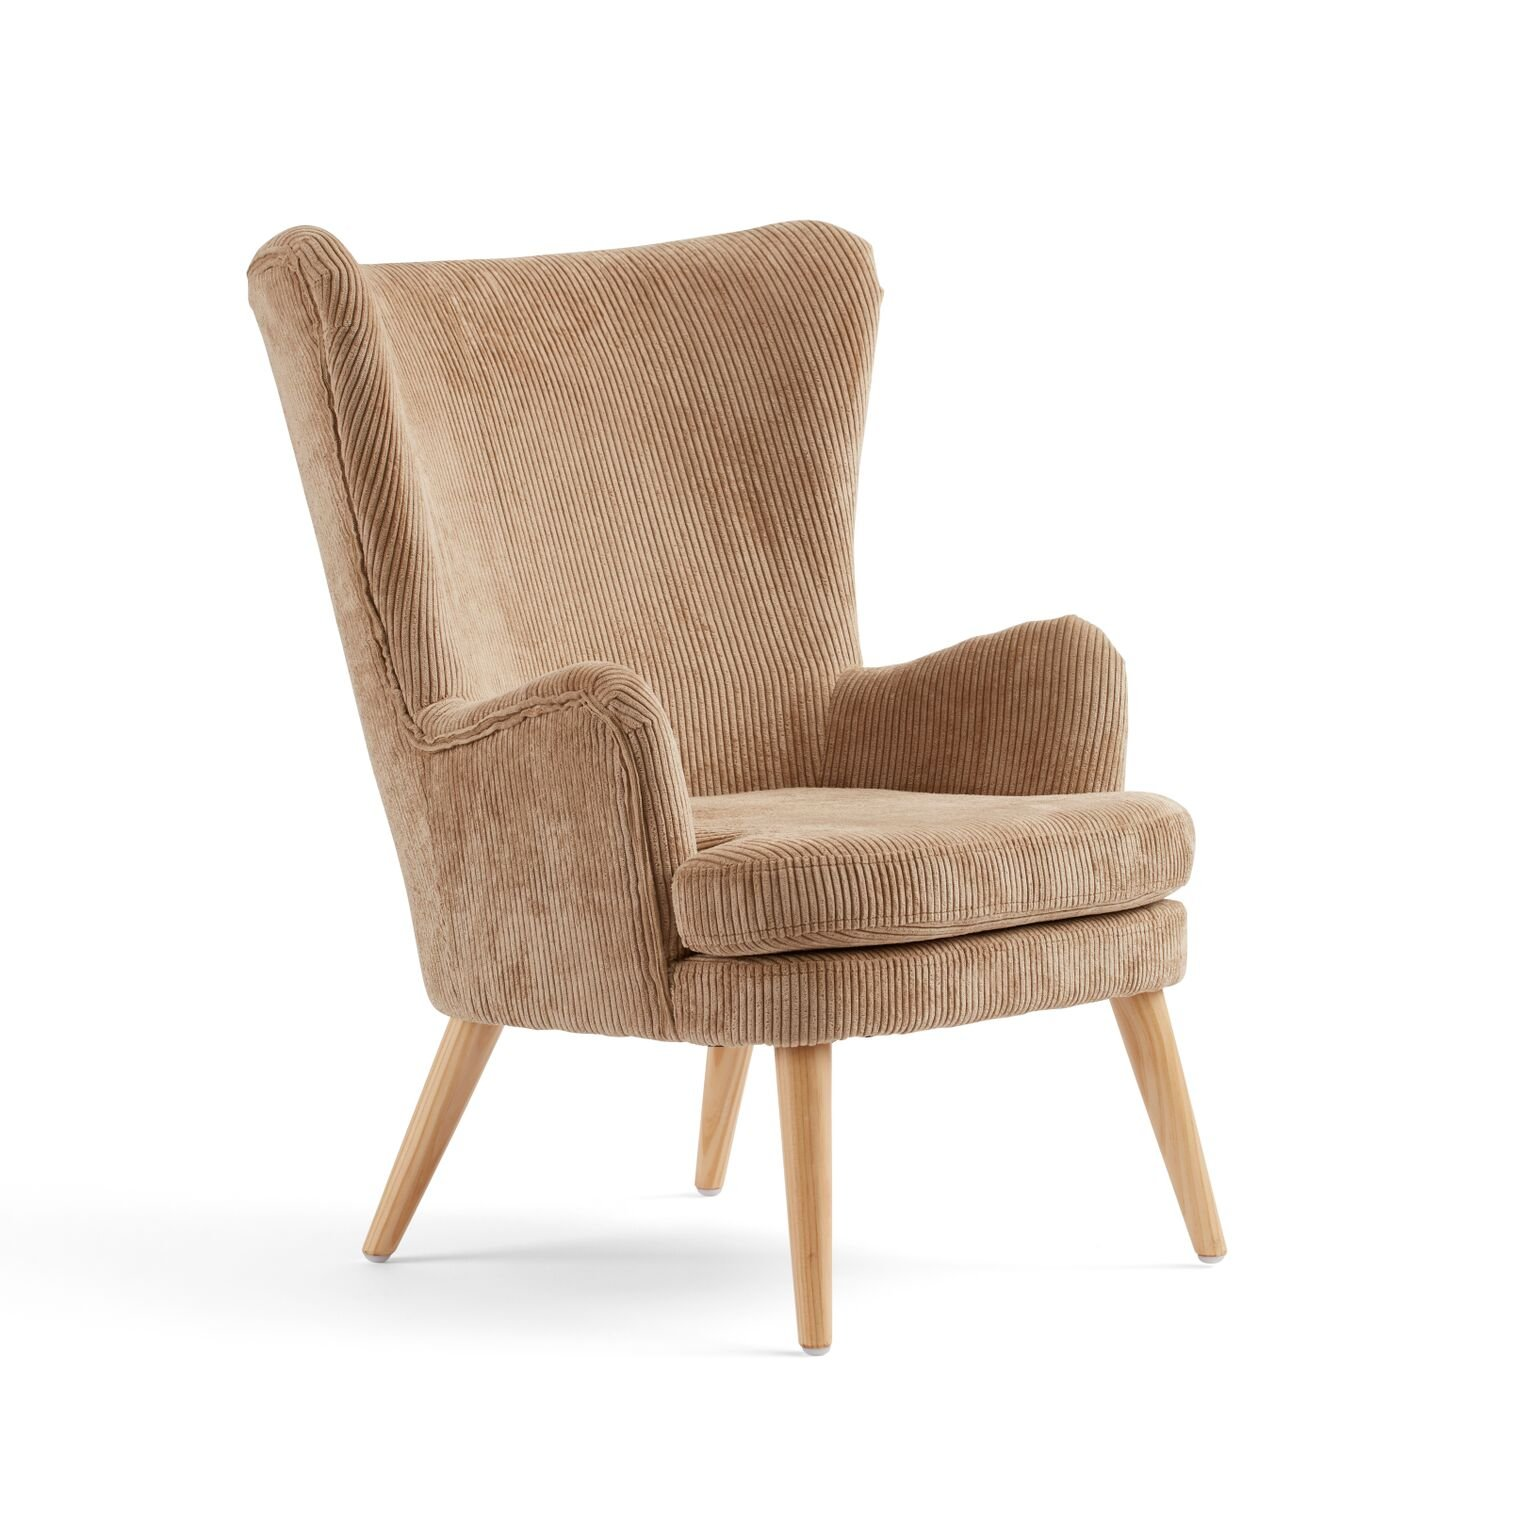 Kids Concept - Manchester - Armchair Cordoroy (1000382)